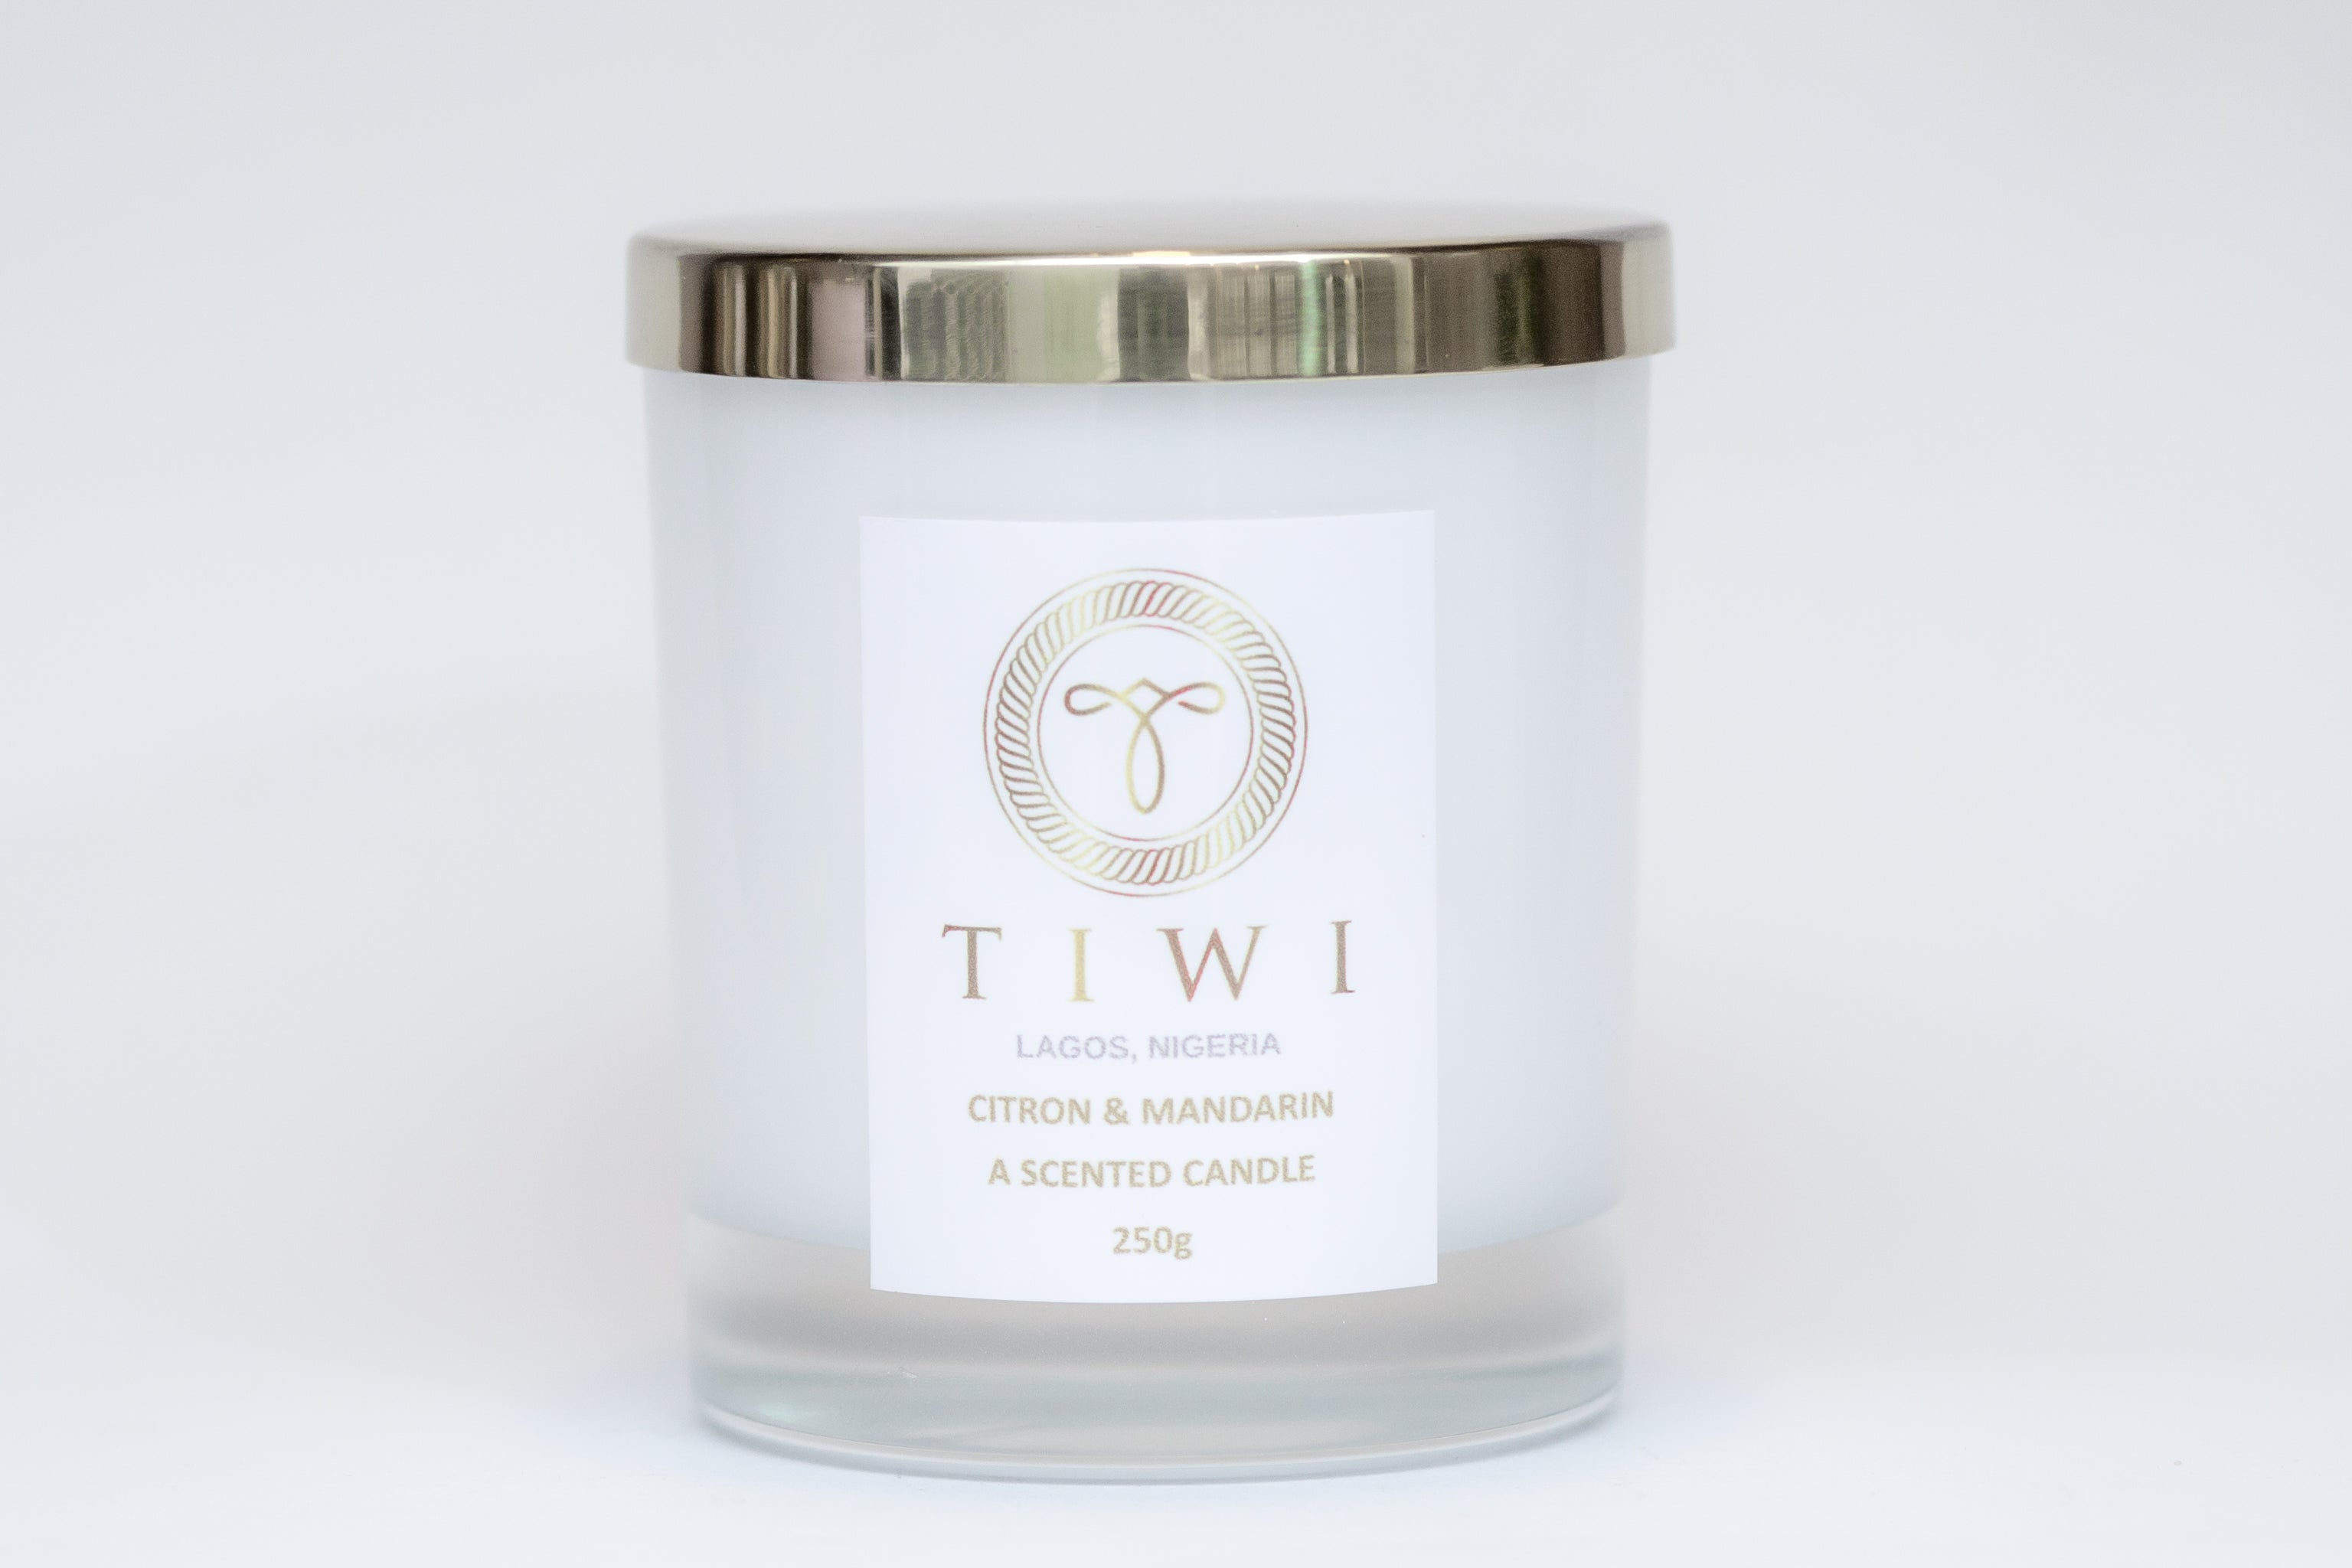 TIWI Citron & Mandarin - A Scented Candle